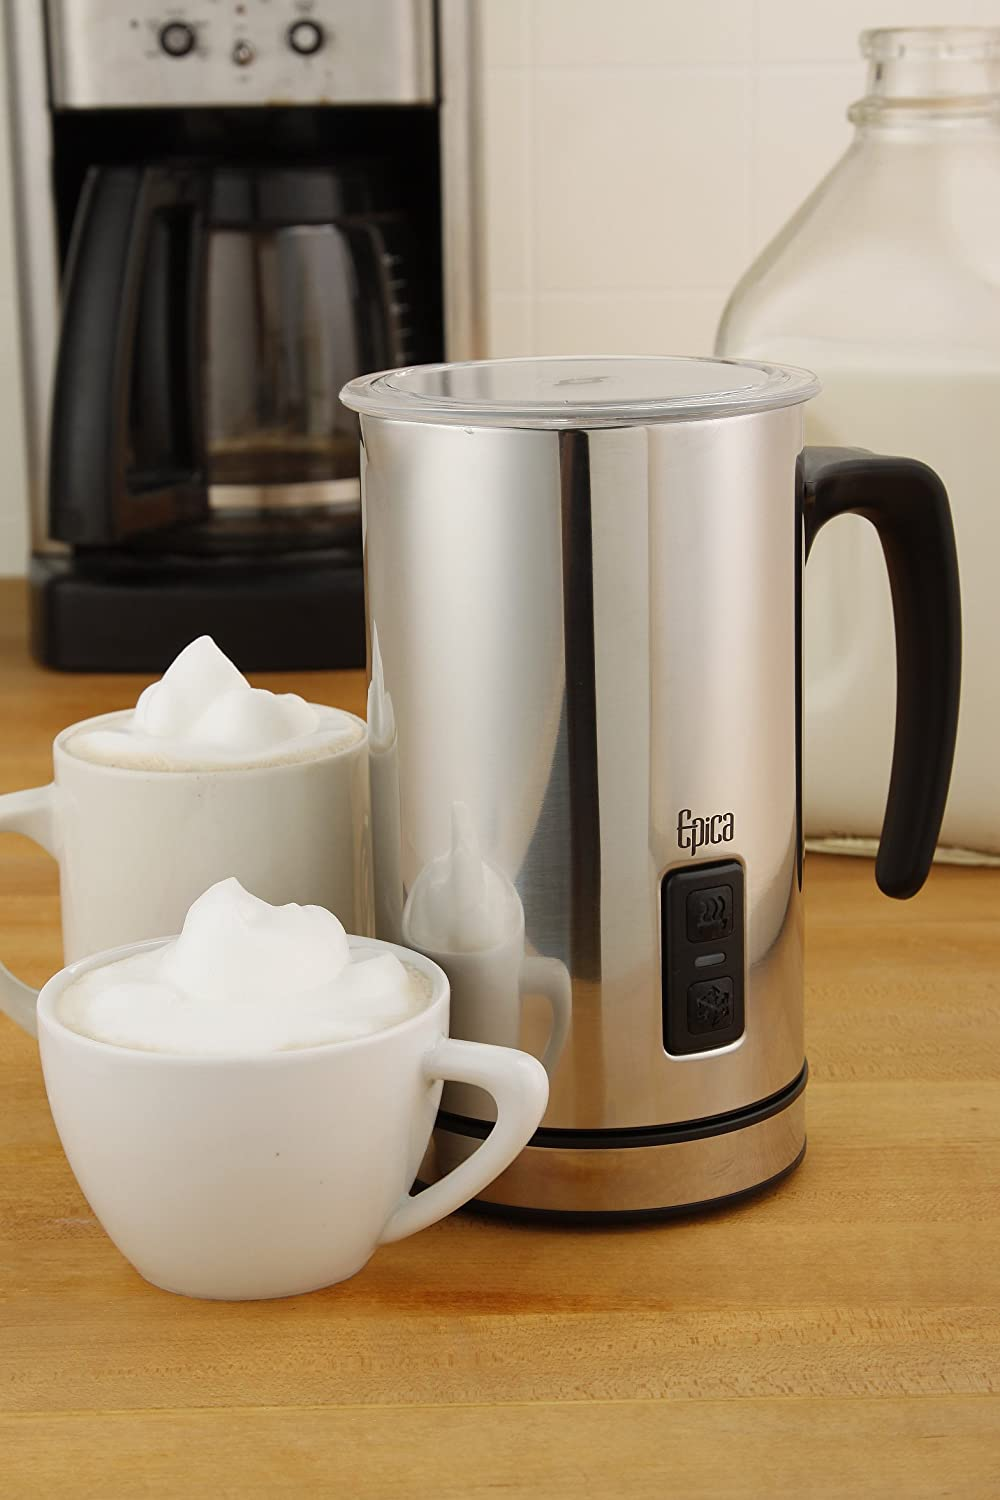 Epica Automatic Electric Milk Frother and Heater Carafe #Review & #Recipes #scrf Visit Shady's Contests, Reviews, and Freebies at http://paulams.weebly.com/blog.html